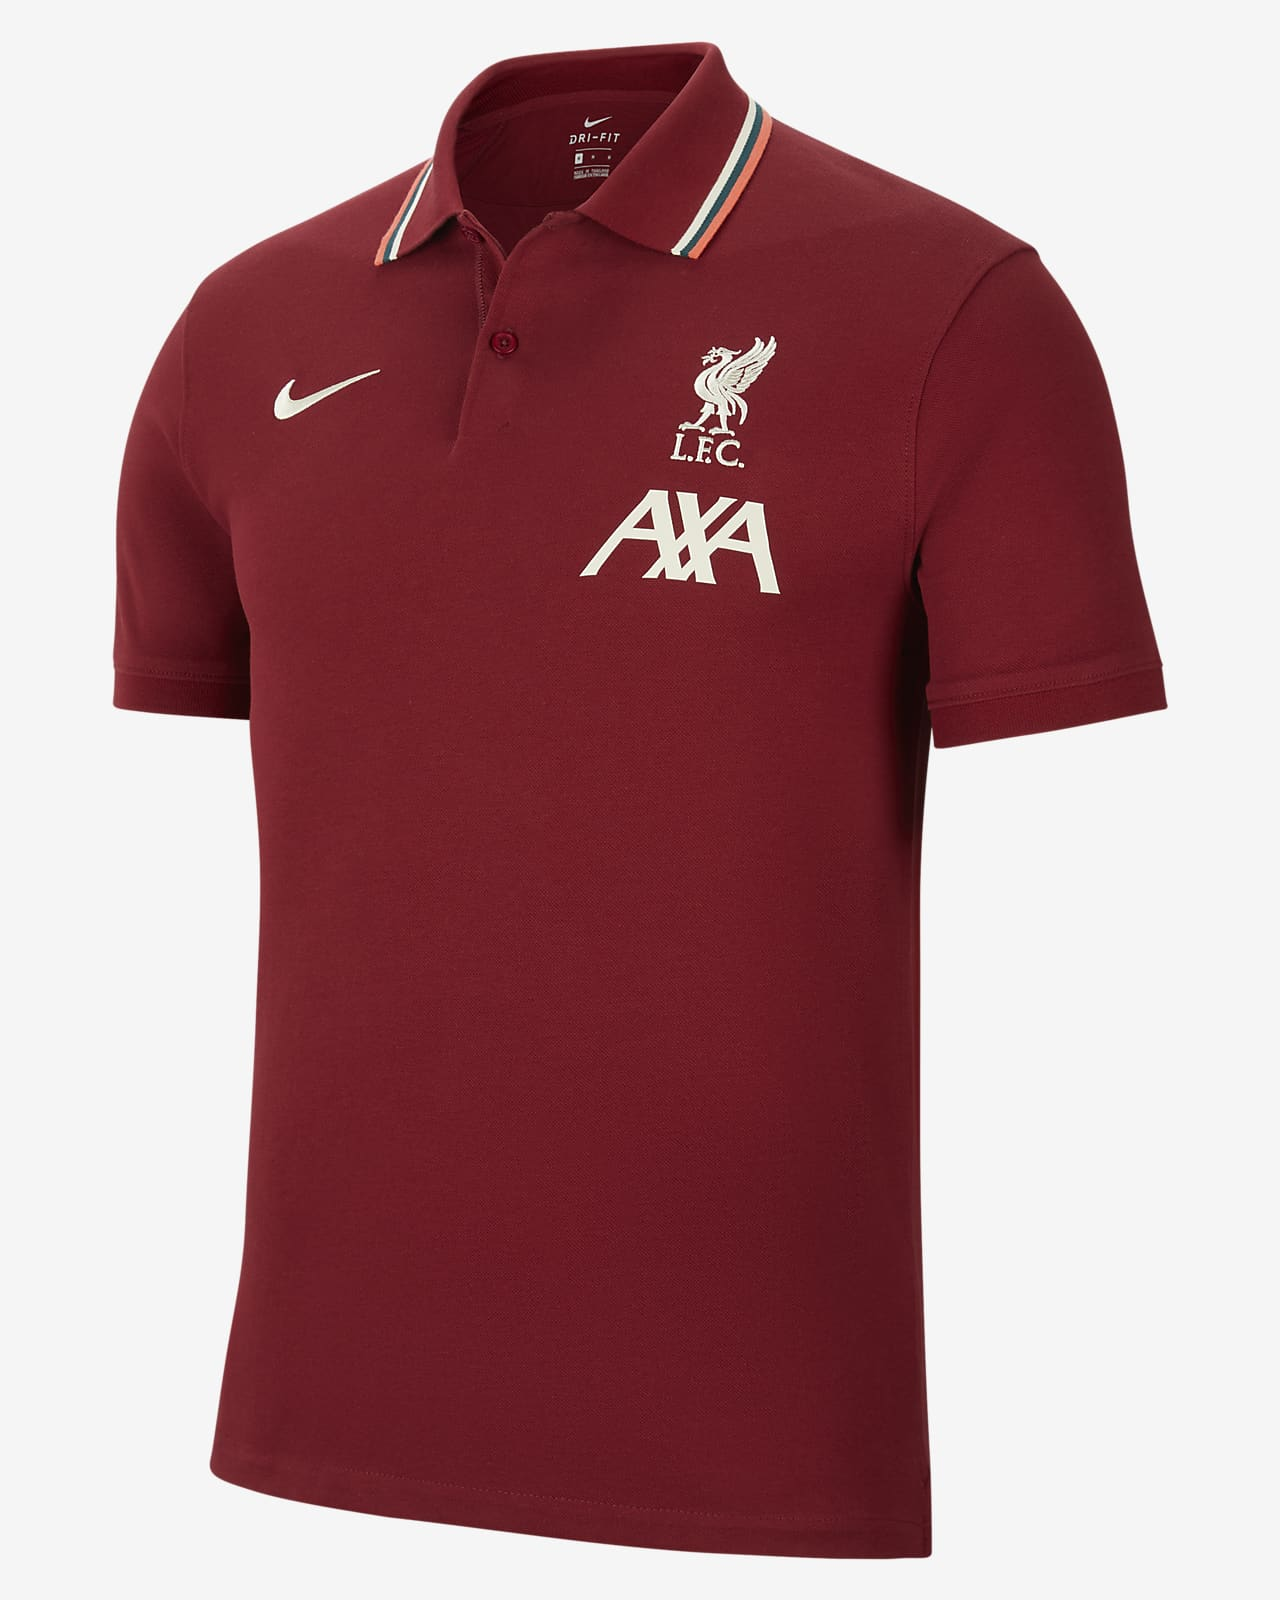 The Nike Polo Liverpool F.C. Men's Slim-Fit Polo